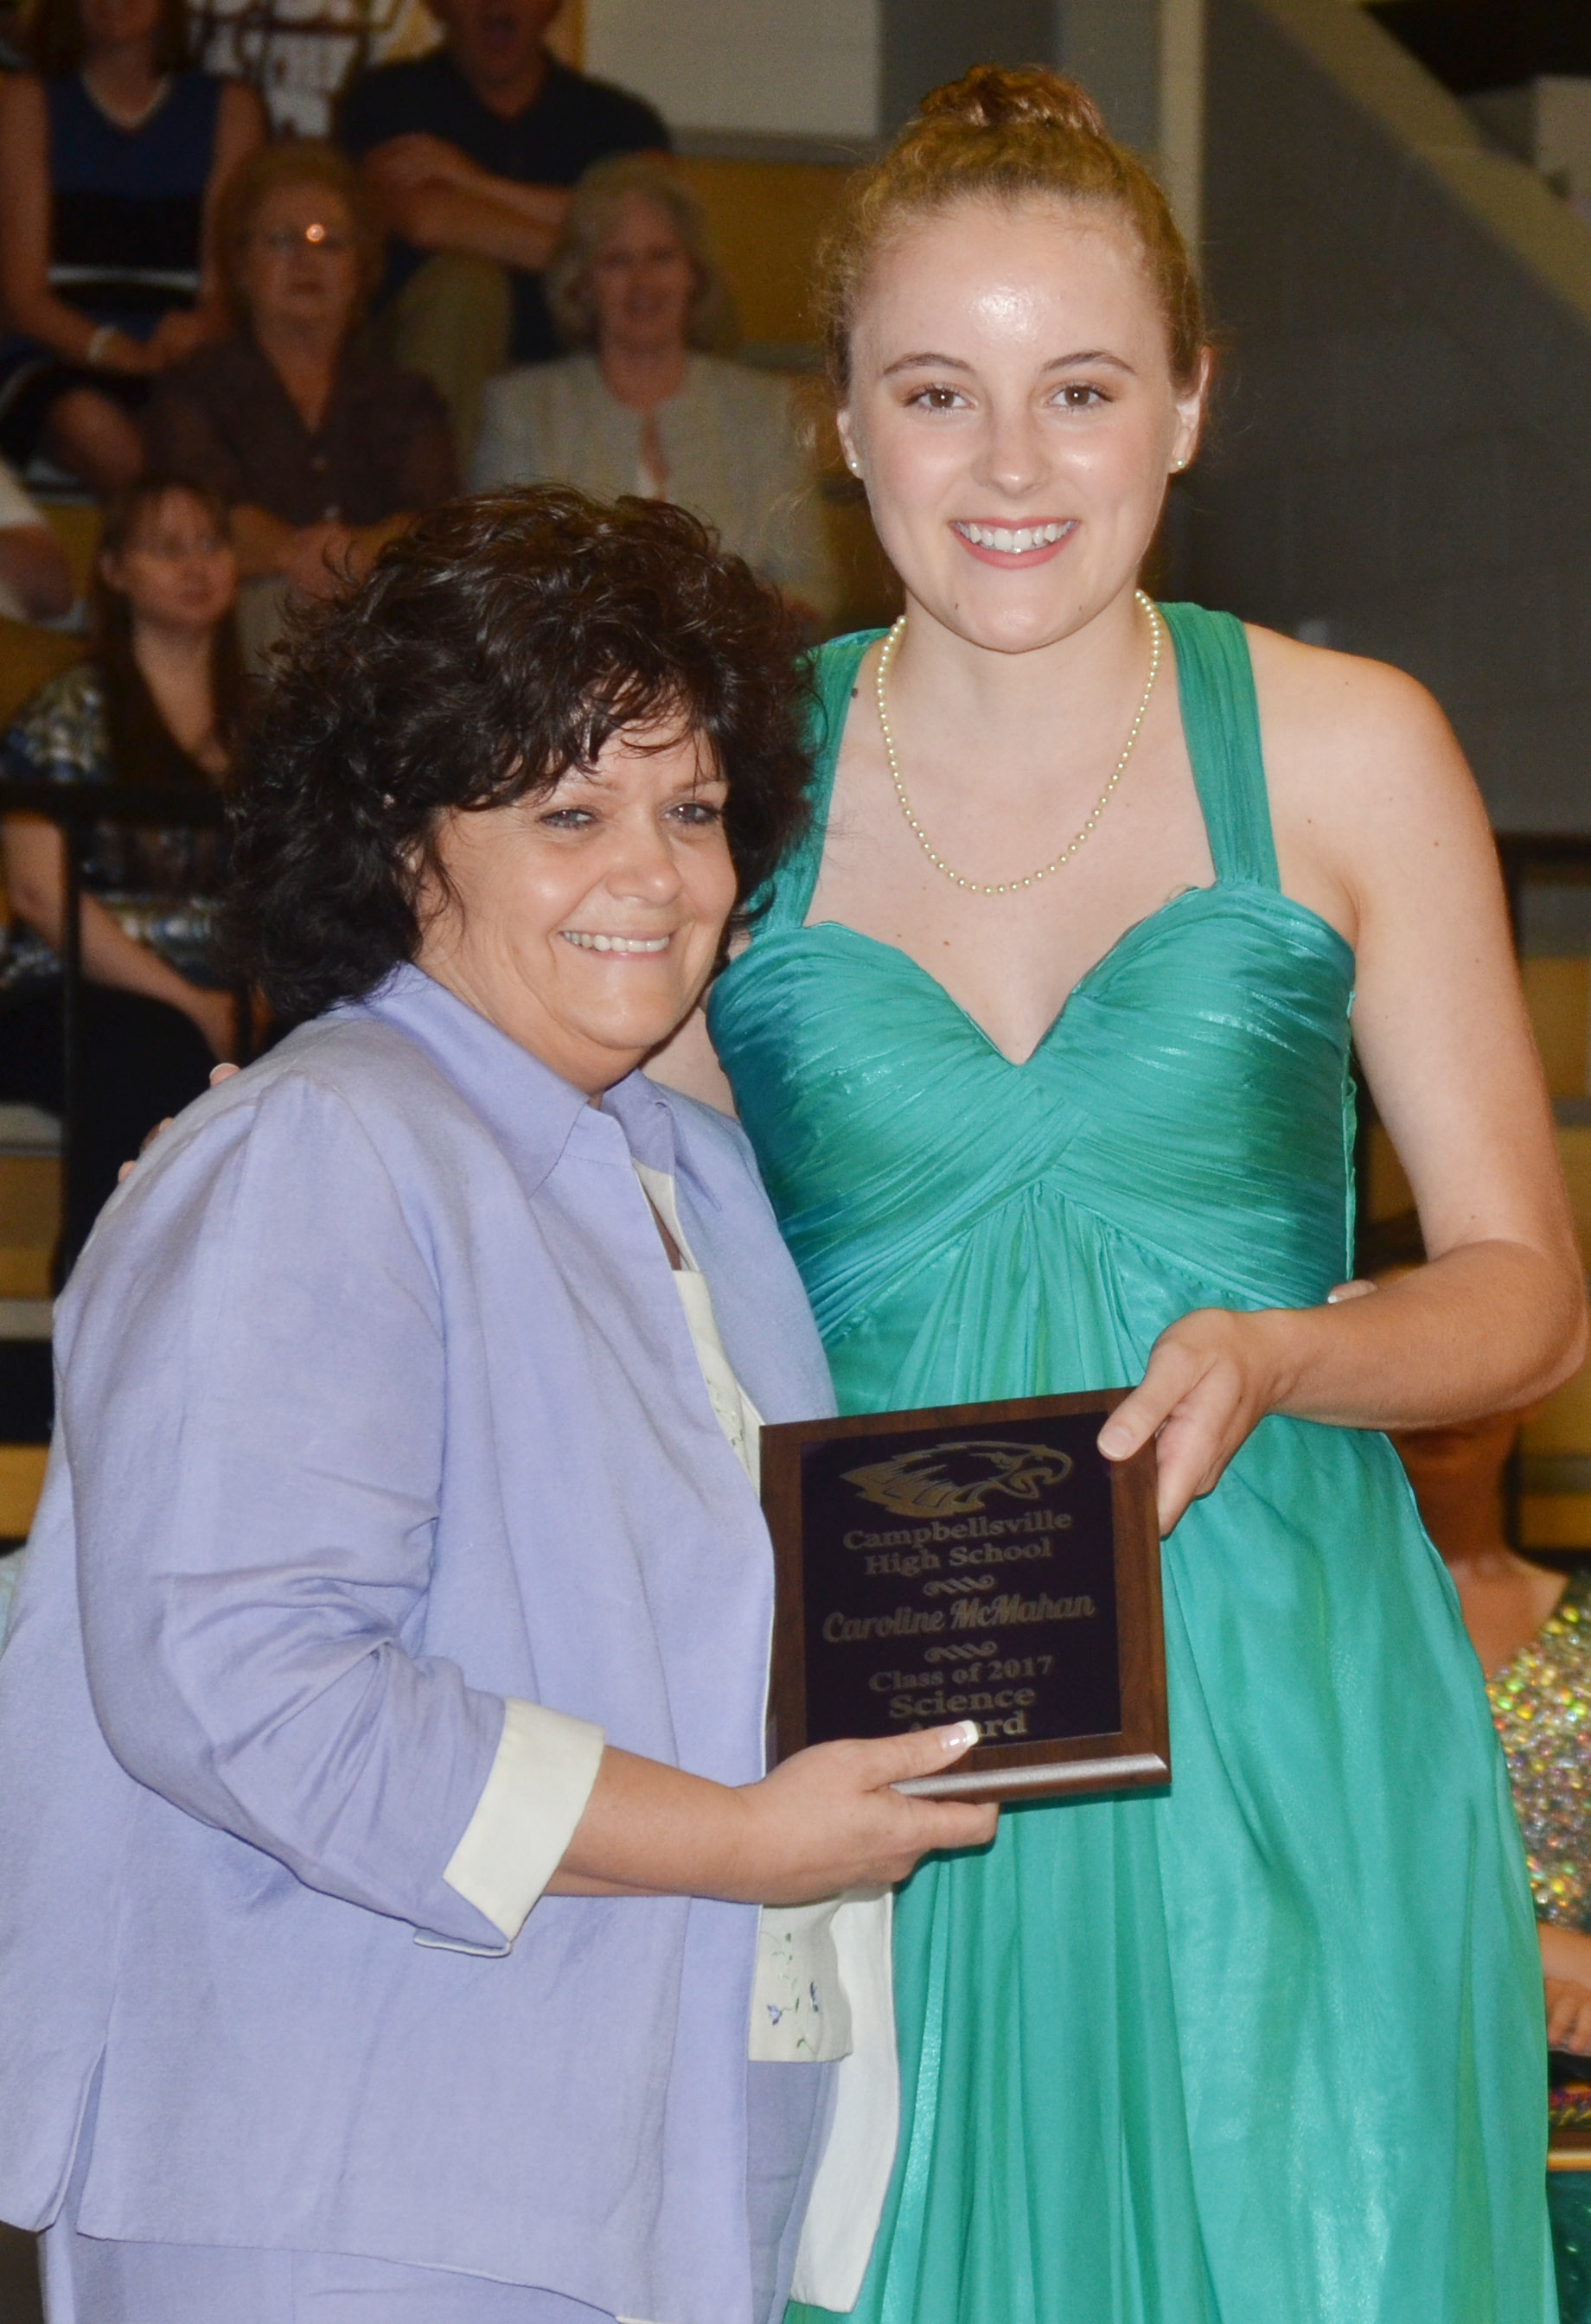 Caroline McMahan receives the science award. She is pictured with science teacher Cheryl Dicken.